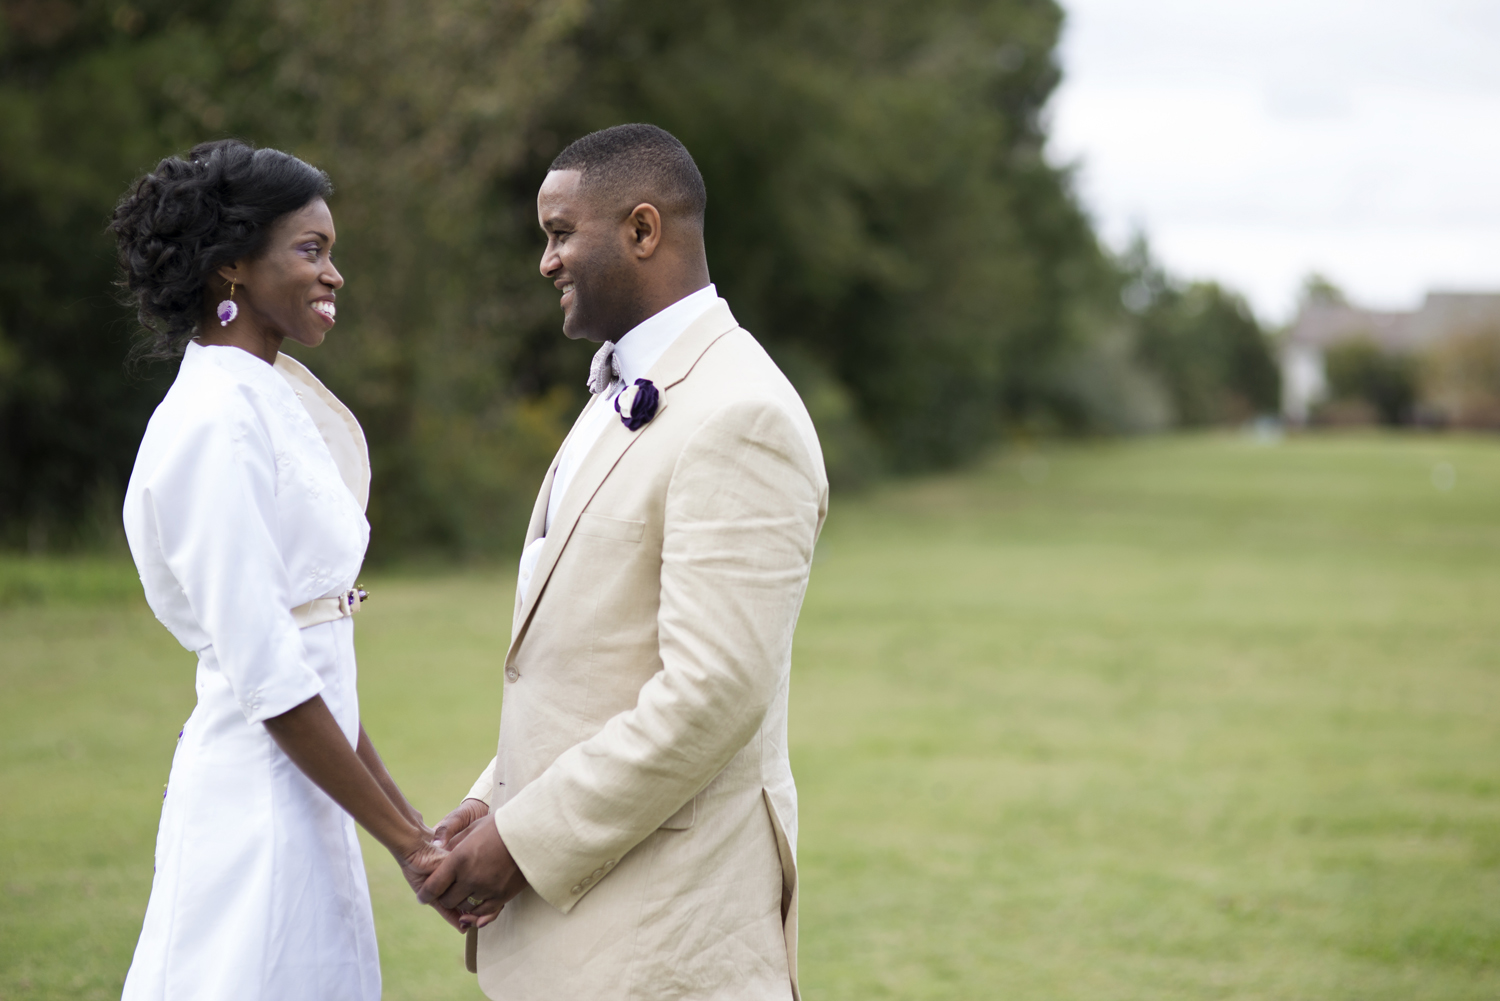 Bride and groom portraits on a golf course in Chesapeake, Virginia in October